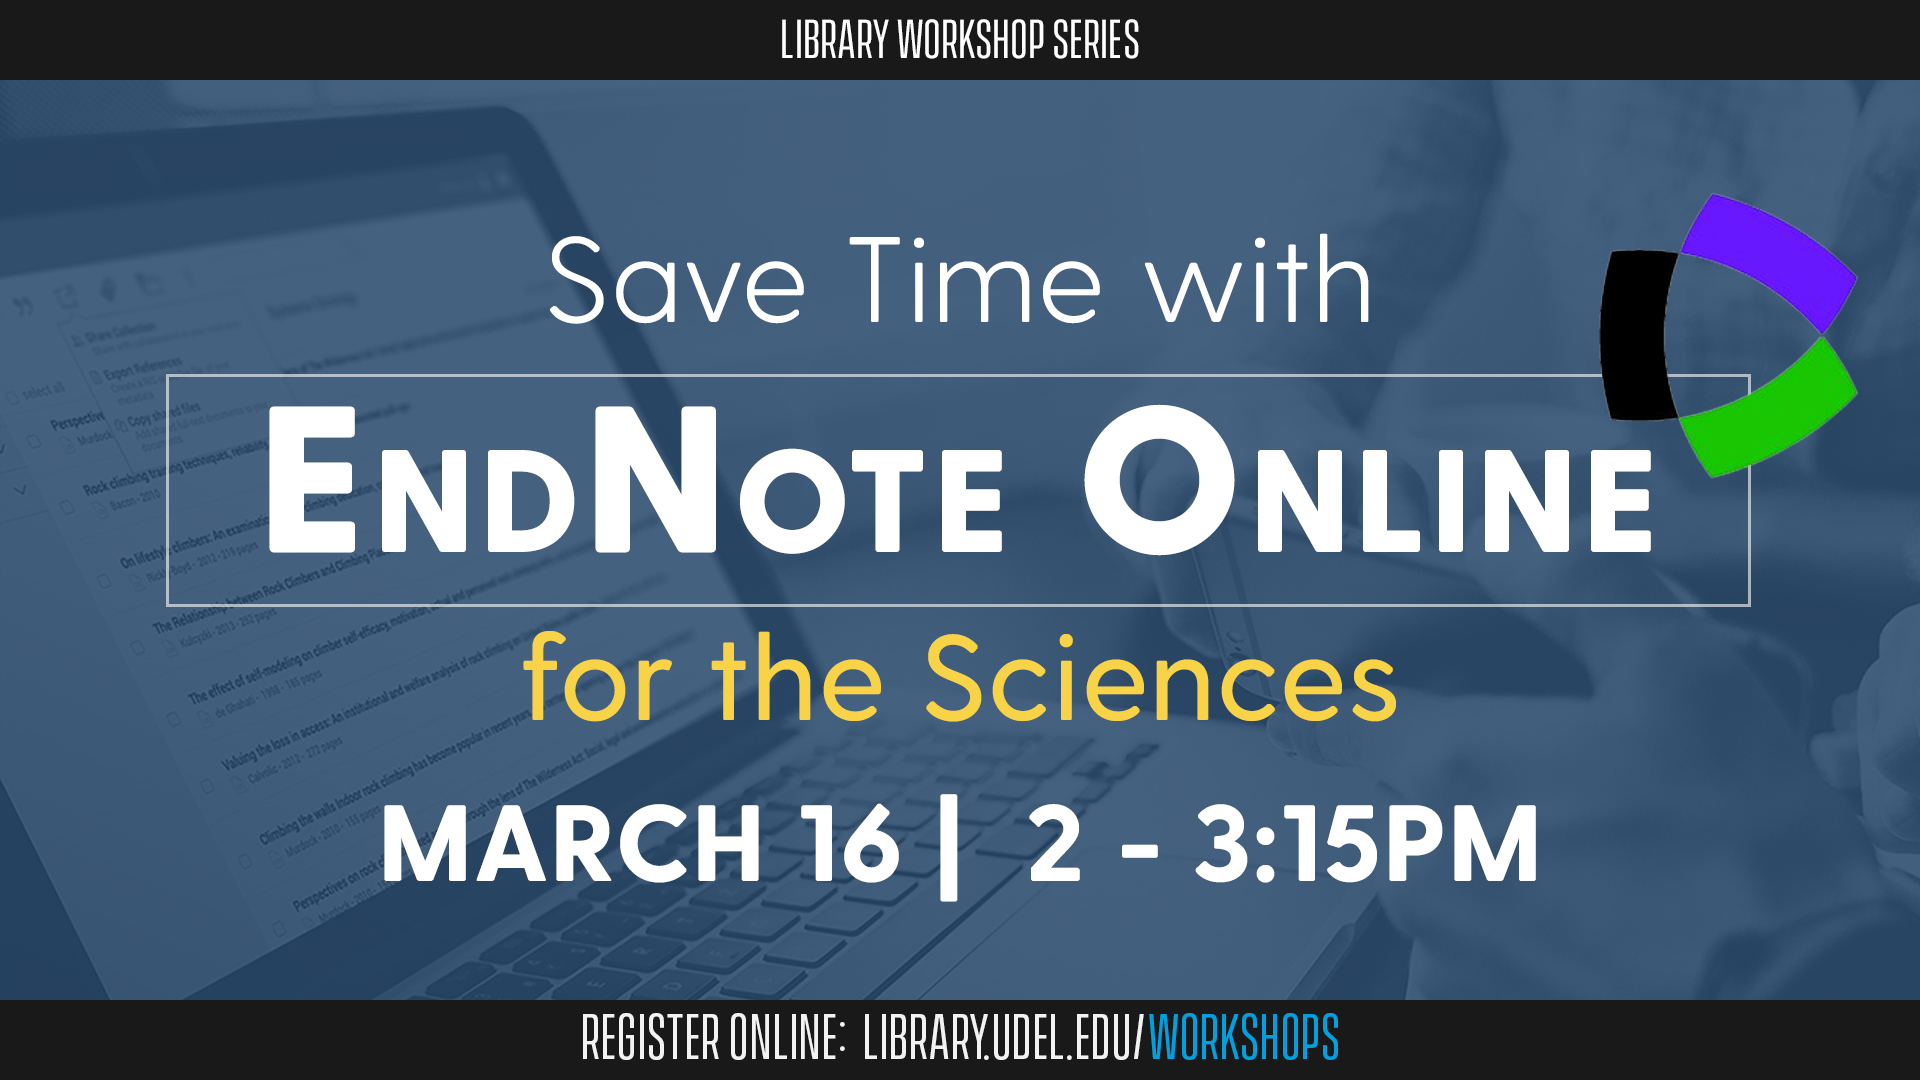 Save Time with EndNote Online for the Sciences